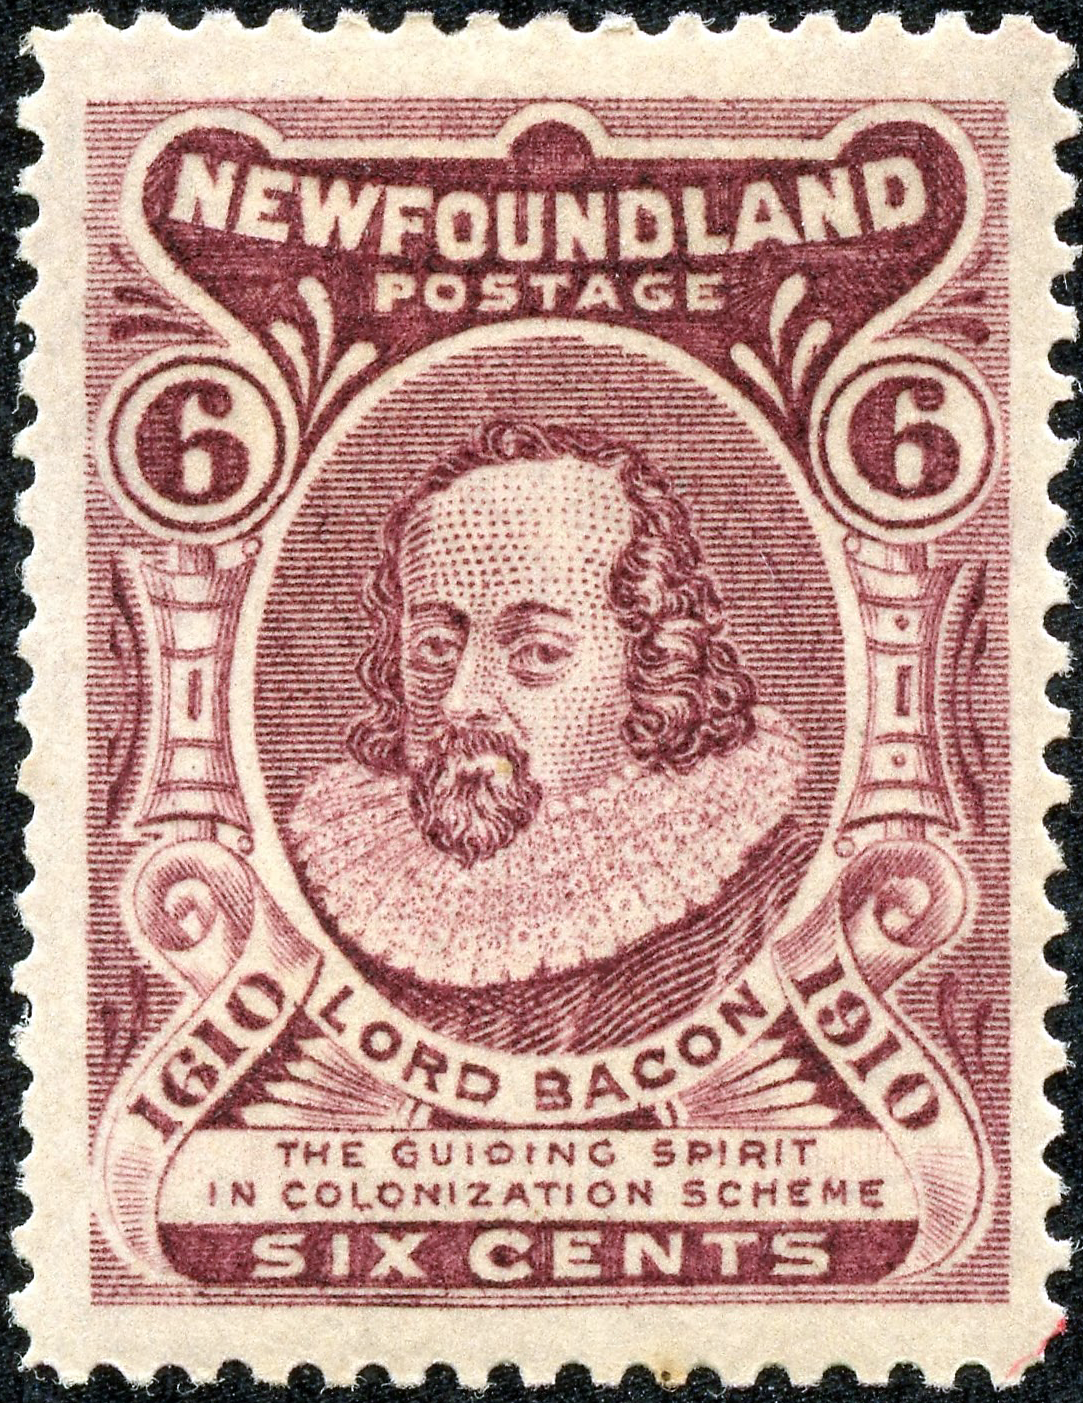 Images Of Stamped Concrete Patios: Postage Stamps And Postal History Of Newfoundland